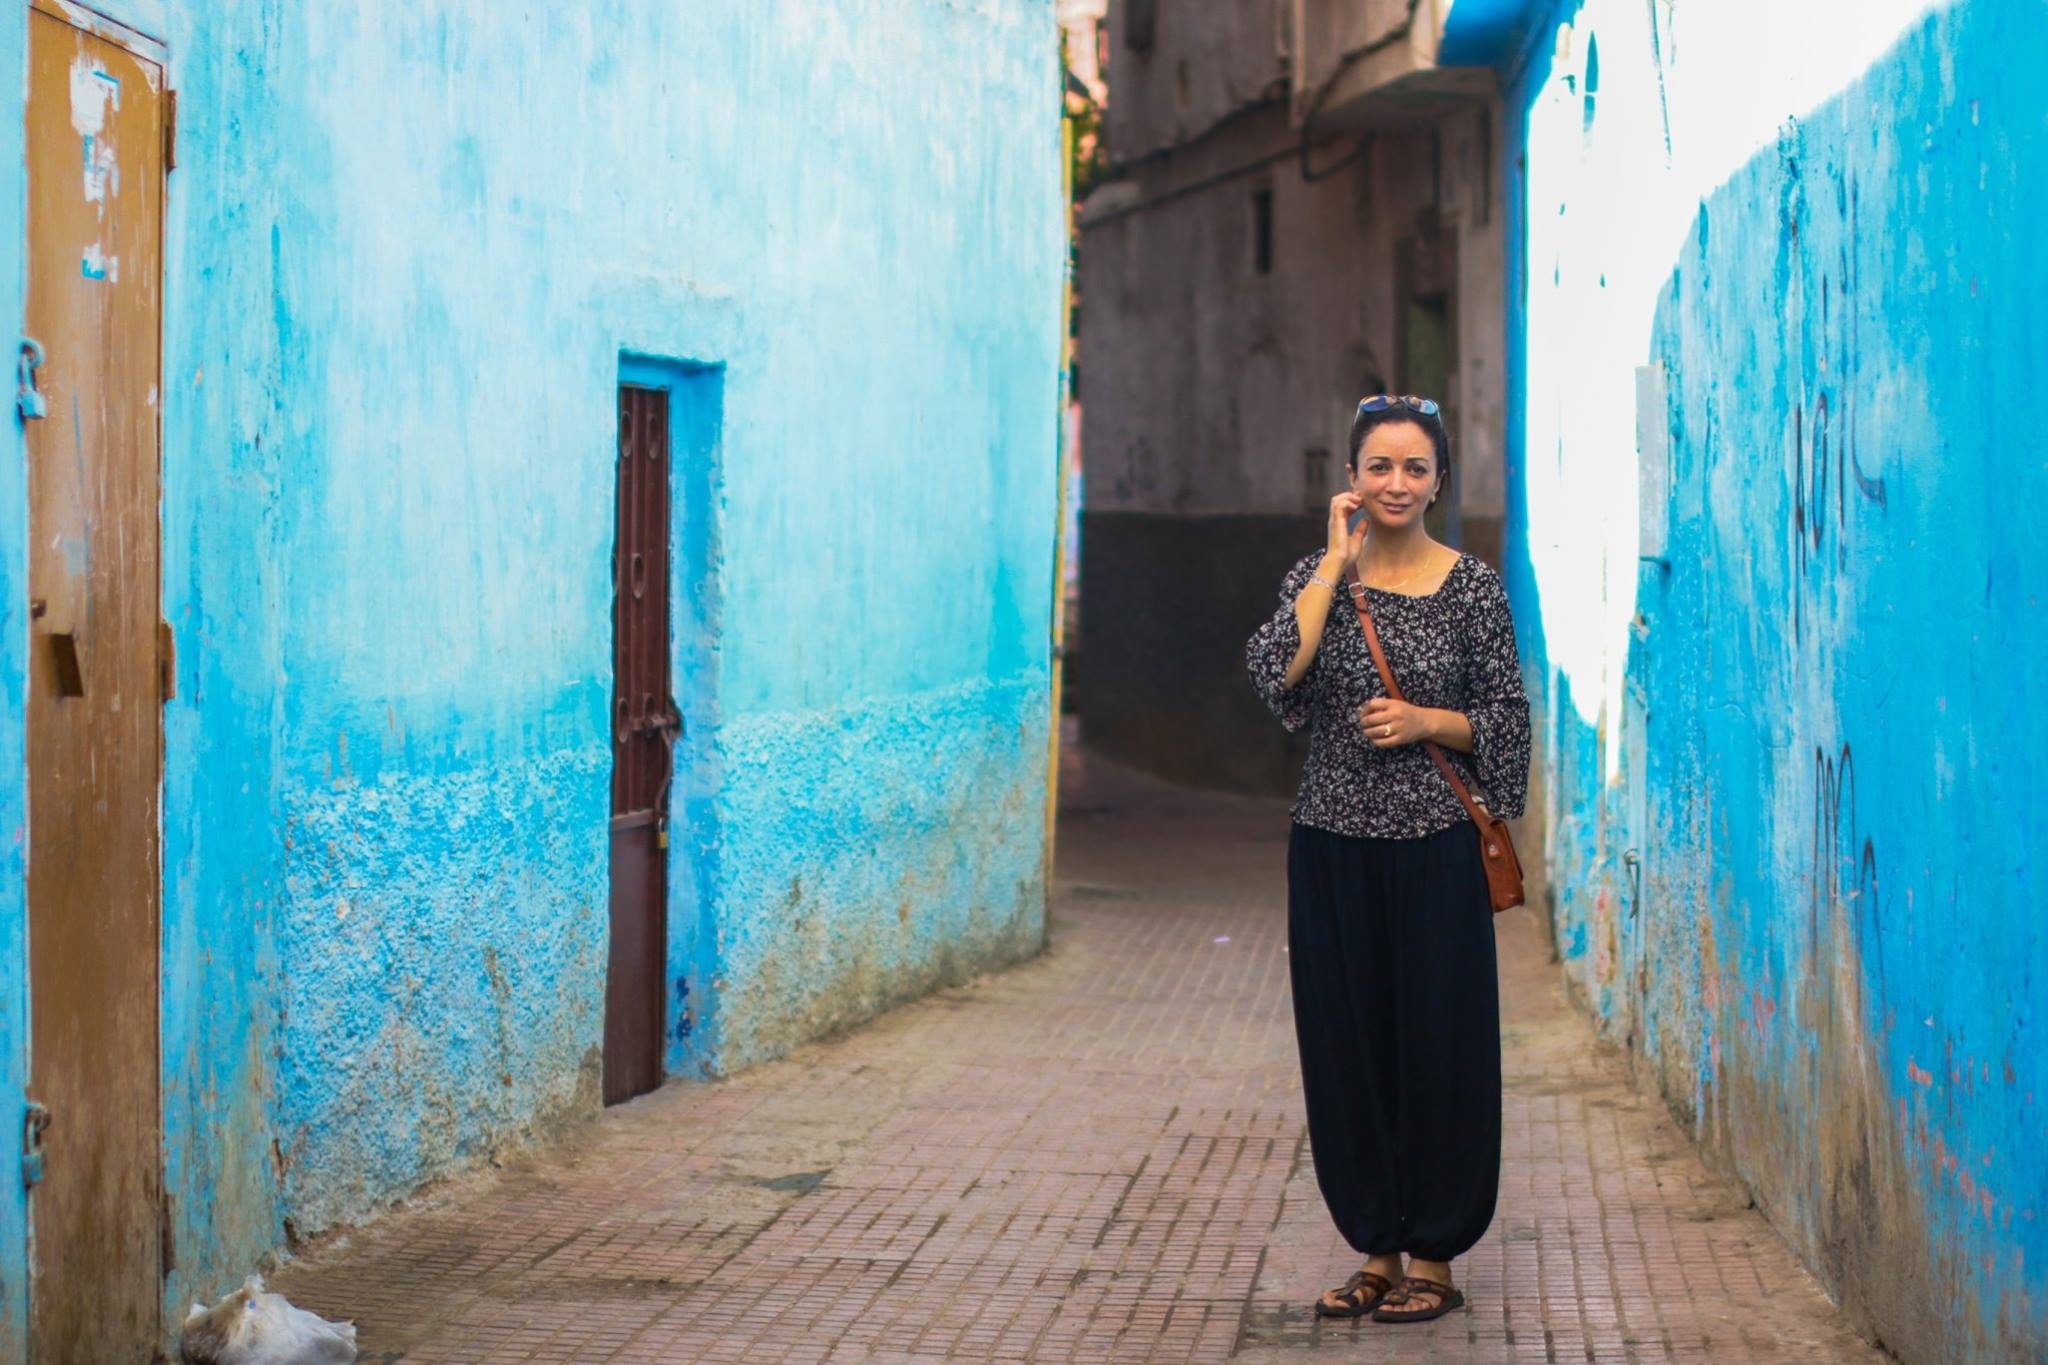 Inside the Walls of Old Medinas- Smile from Rabat